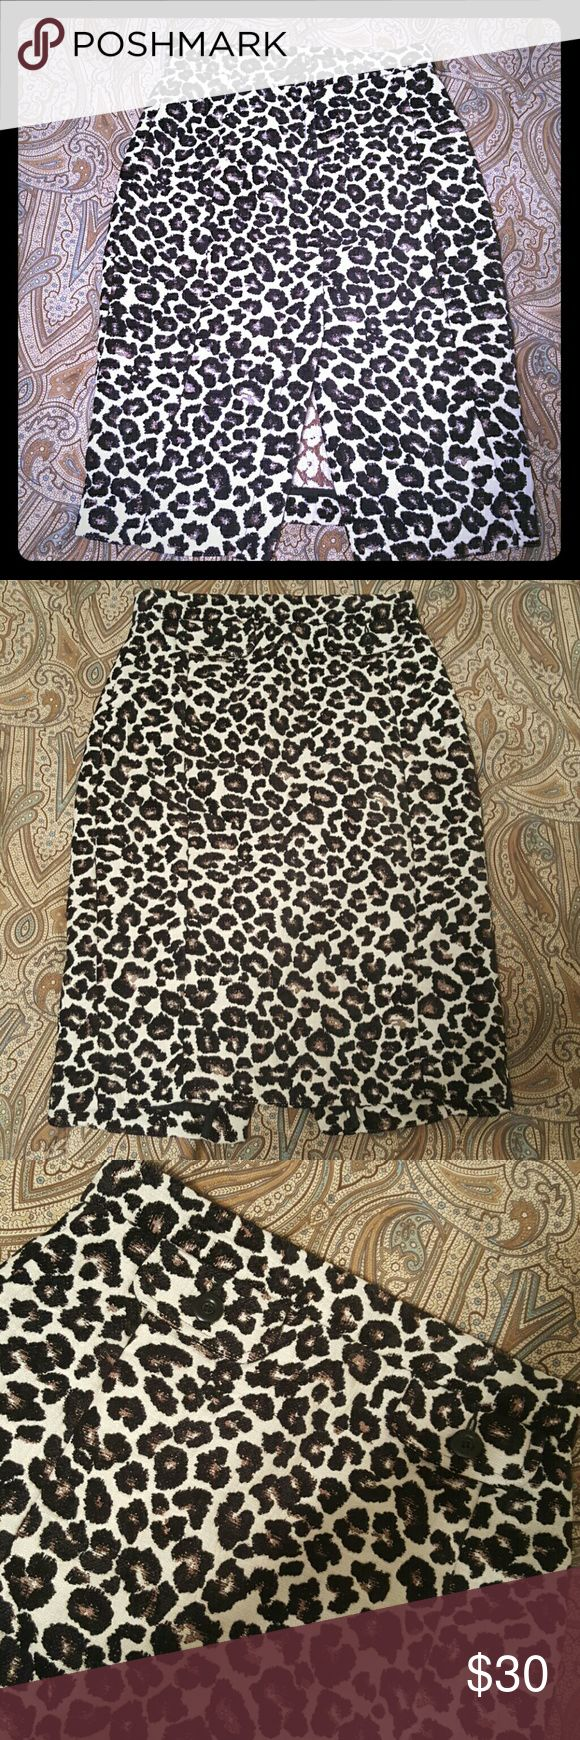 Gorgeous thick, embroidered  Leopard pencil Skirt Gorgeous thick, embroidered  Leopard pencil Skirt euc. runs a tad small. So sad because I loved this.  H & M tends to run small.  off white, black, brownish-gold. Stunning!!! H&M Skirts Pencil